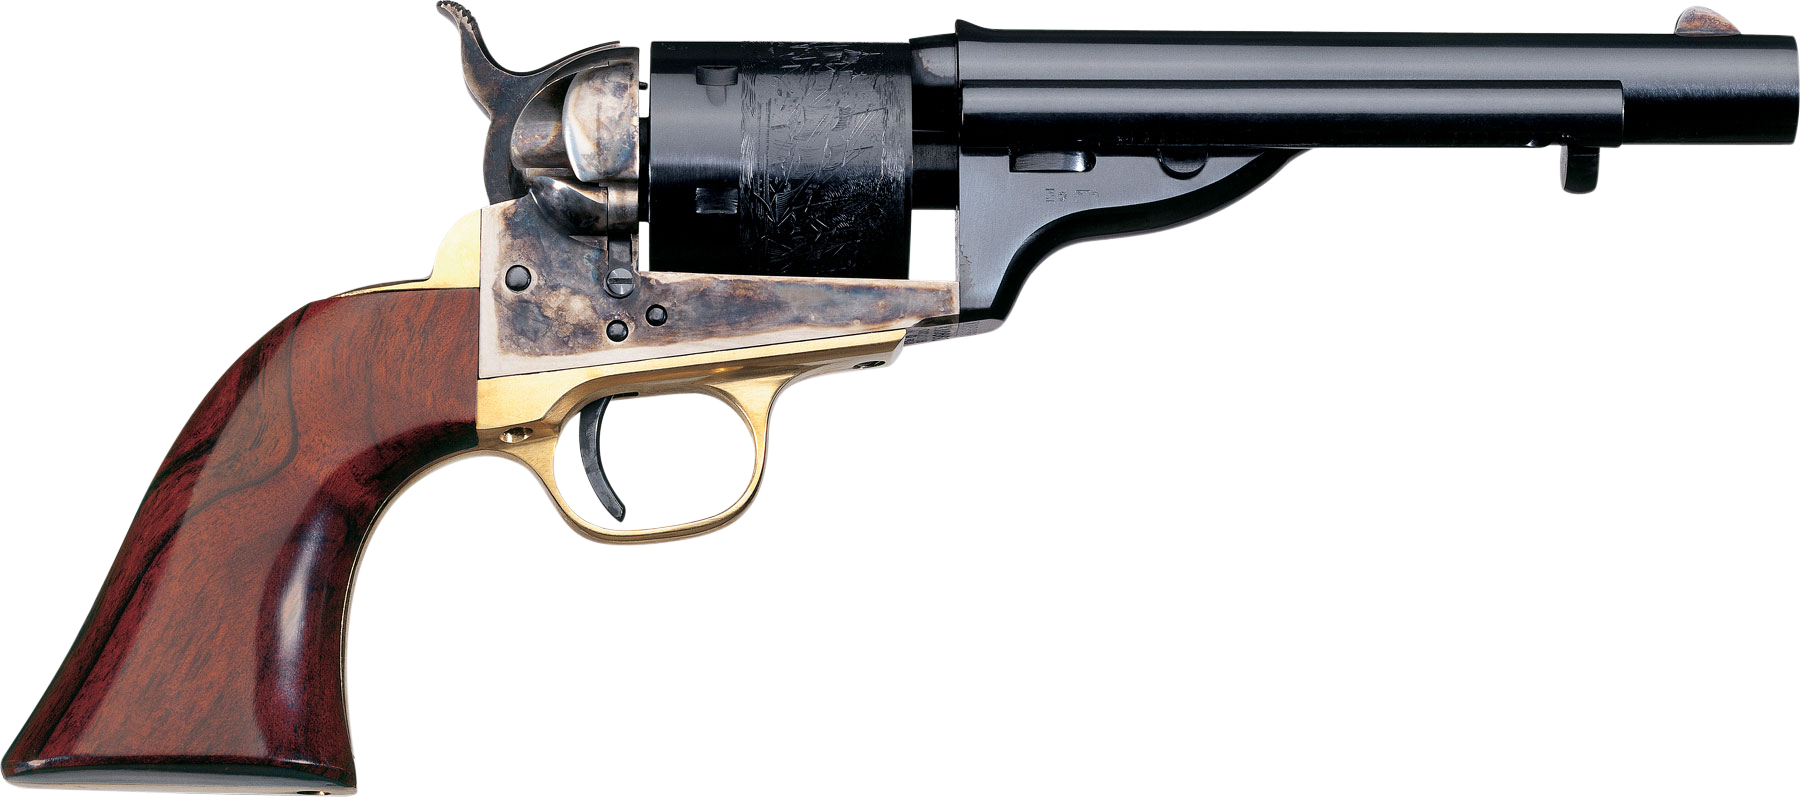 Taylors and Company 0917 1872 Open-Top Single 45 Colt (LC) 5.5